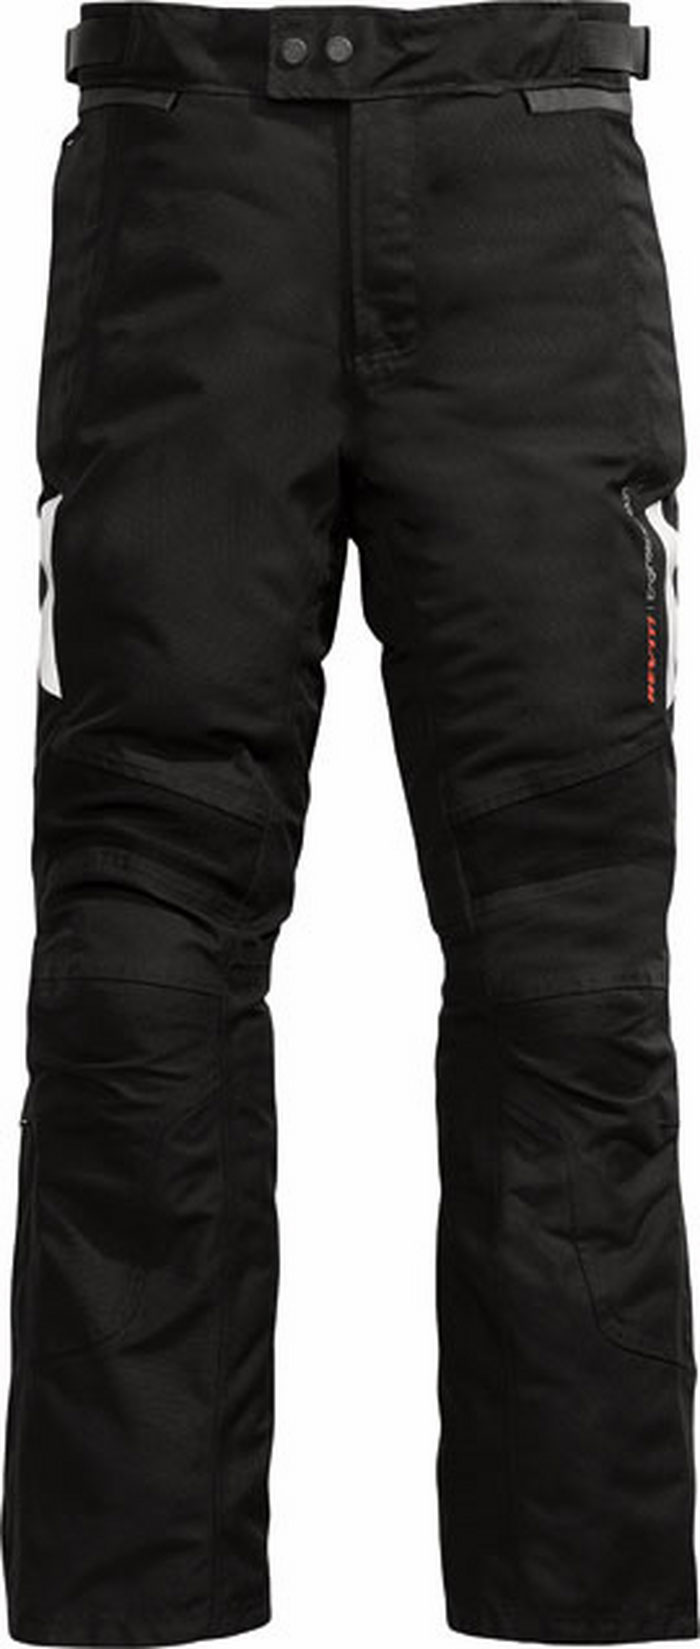 Pantaloni moto Rev'it Horizon neri allungato